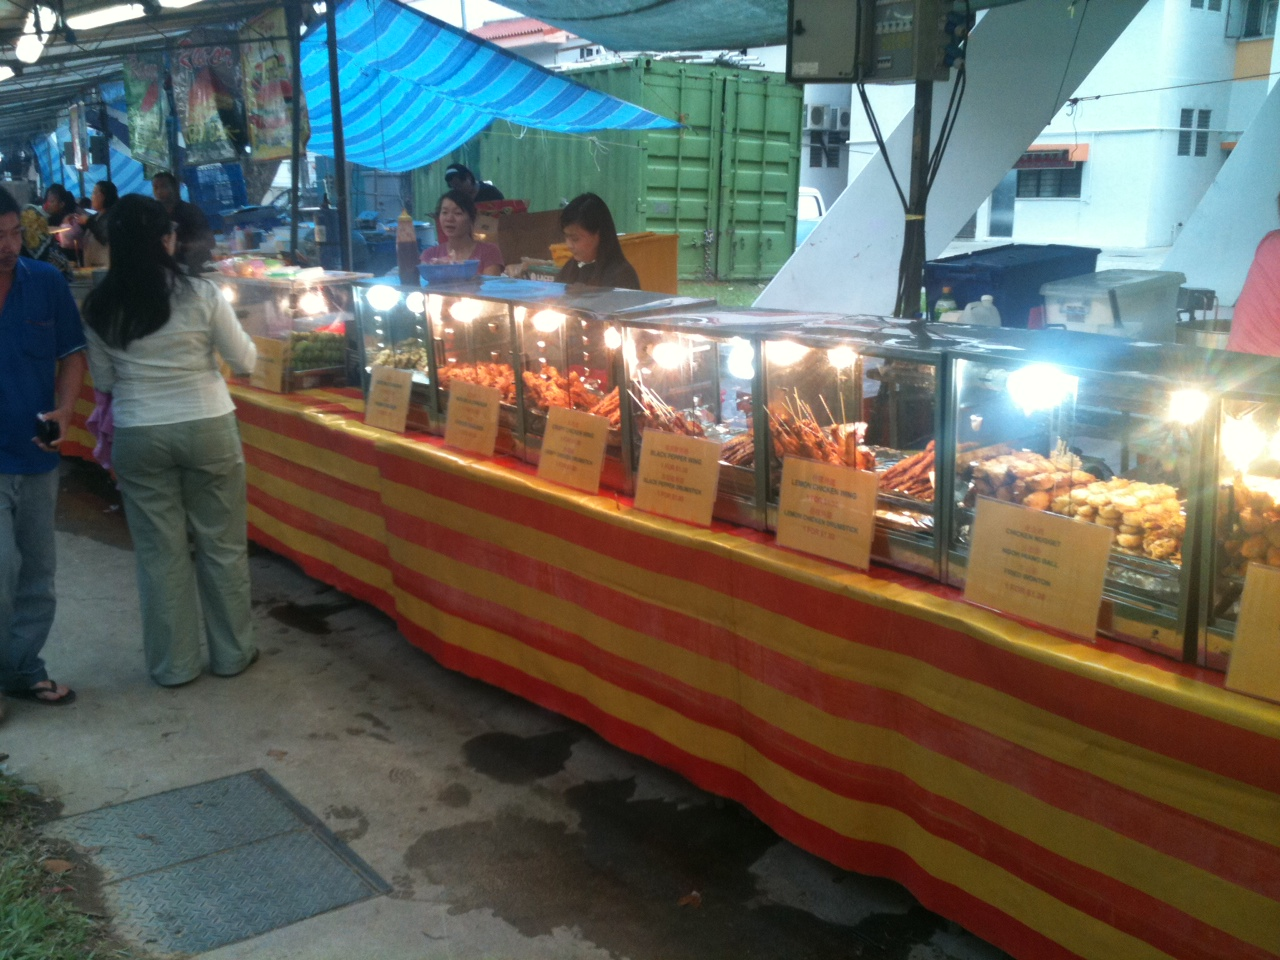 7 must try pasar malam foods in Singapore!